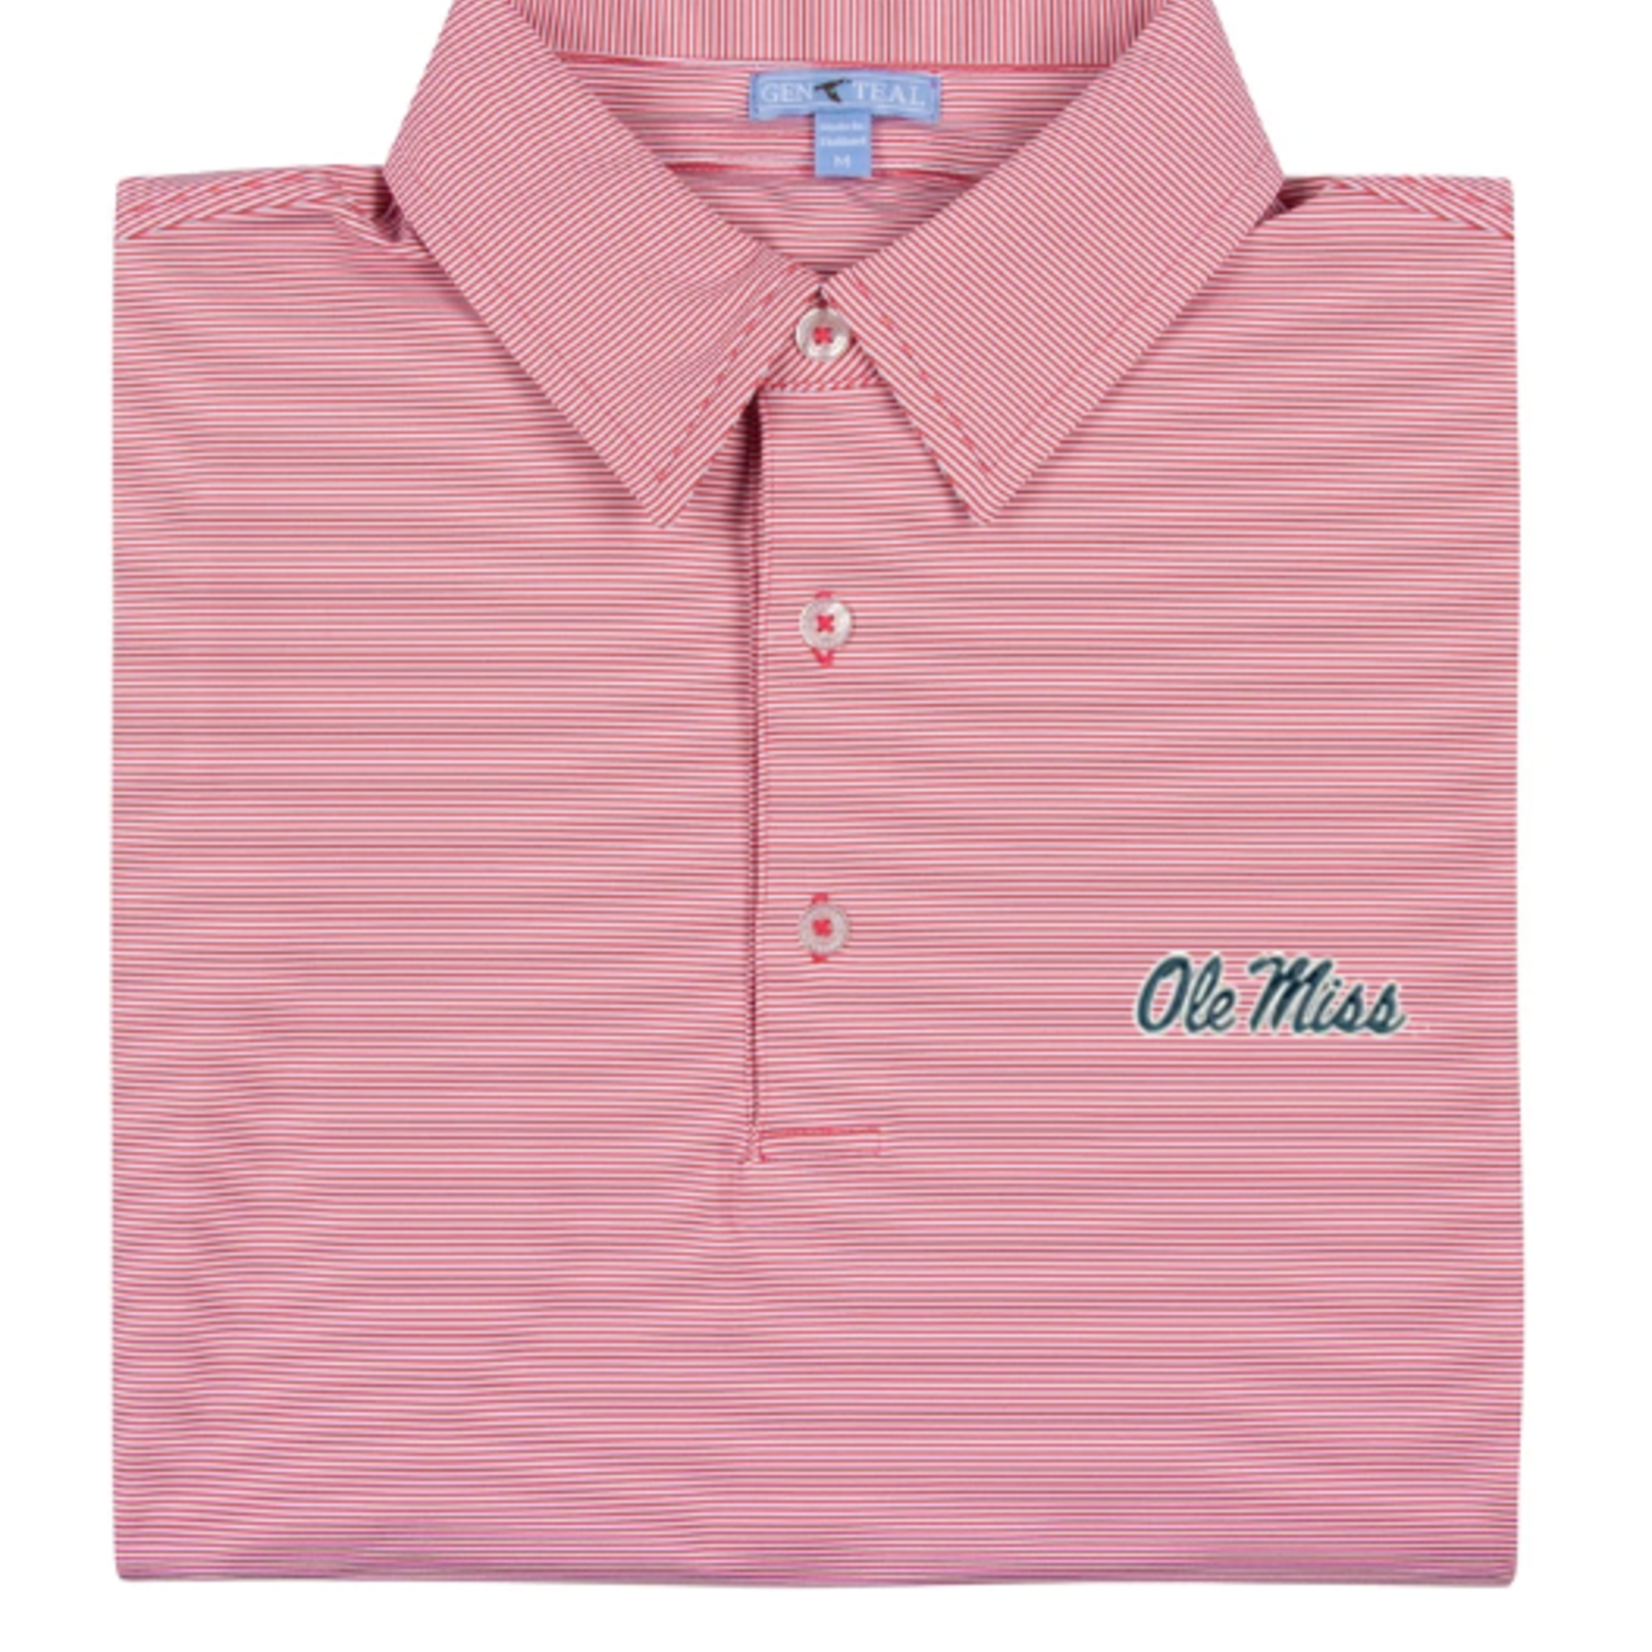 GenTeal Apparel Ole Miss Curry